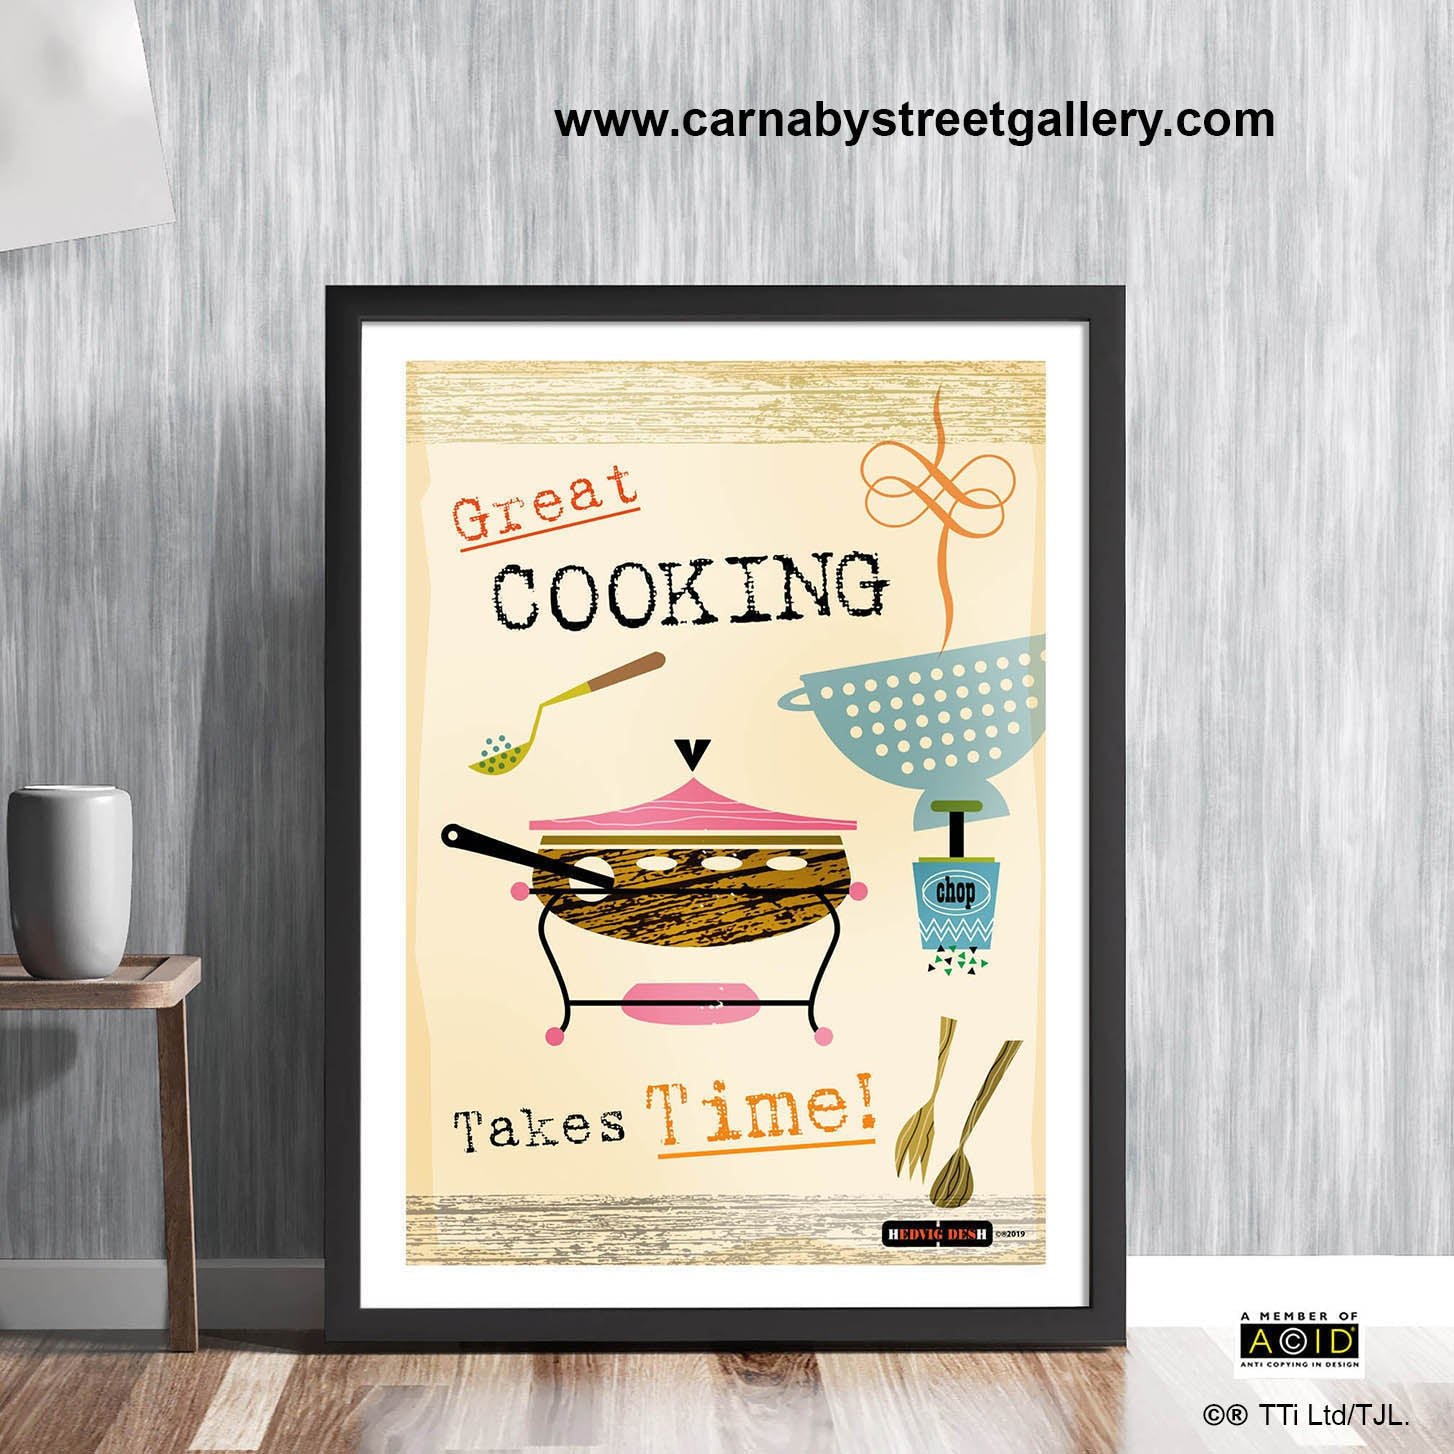 'GREAT COOKING TAKES TIME!' cook's memes retro Scandinavian cookery meme cookbook food poster print illustration by Hedvig Desh collection - 'Unframed'